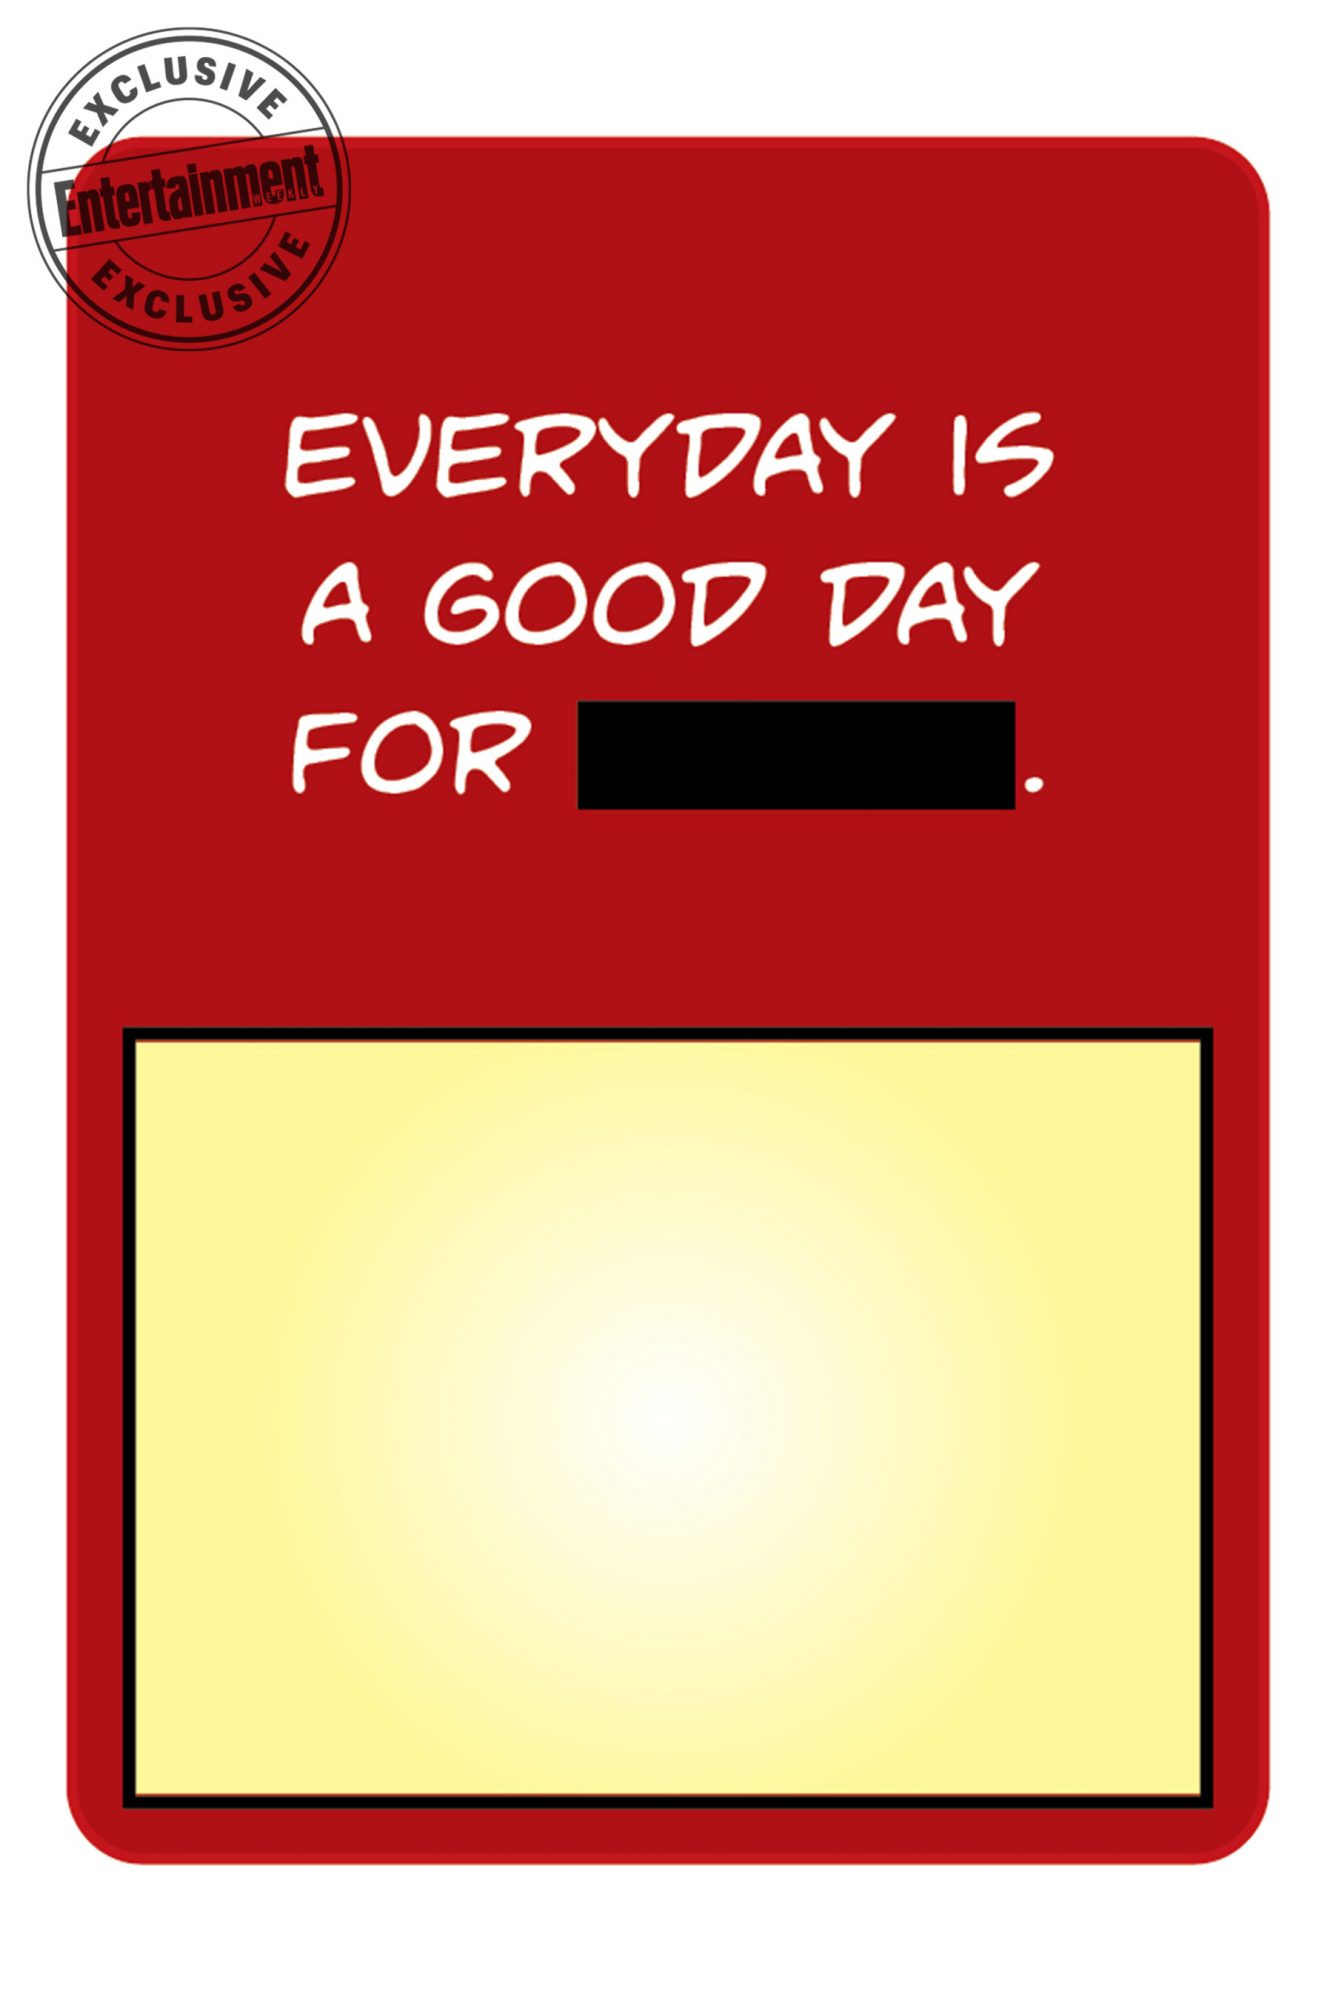 Every day is a good day for [blank].